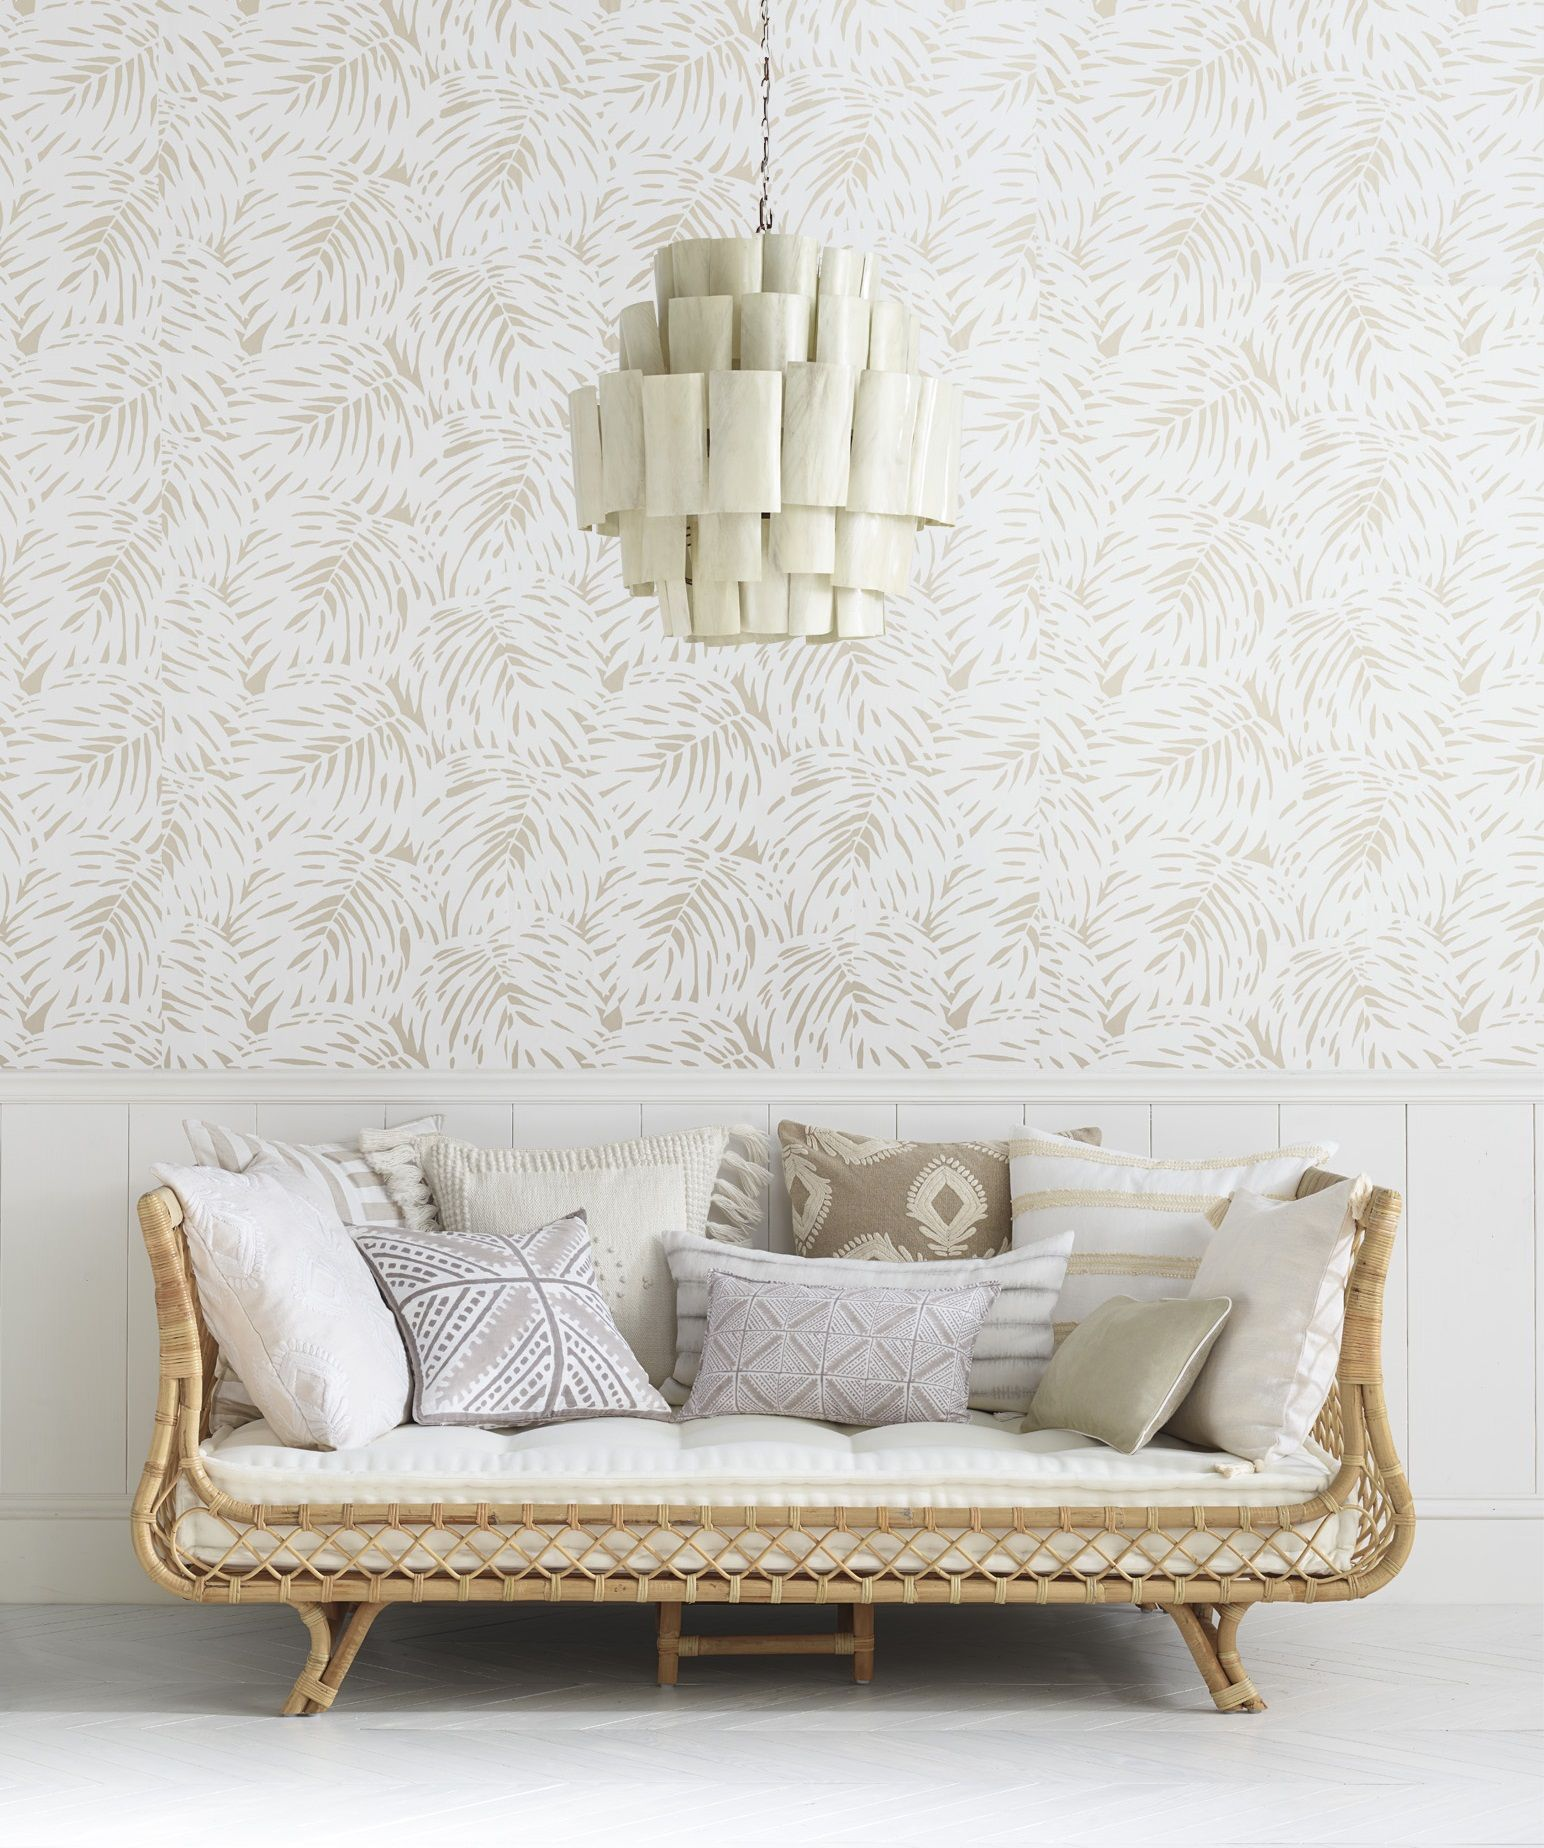 Woven daybed from Serena & Lily